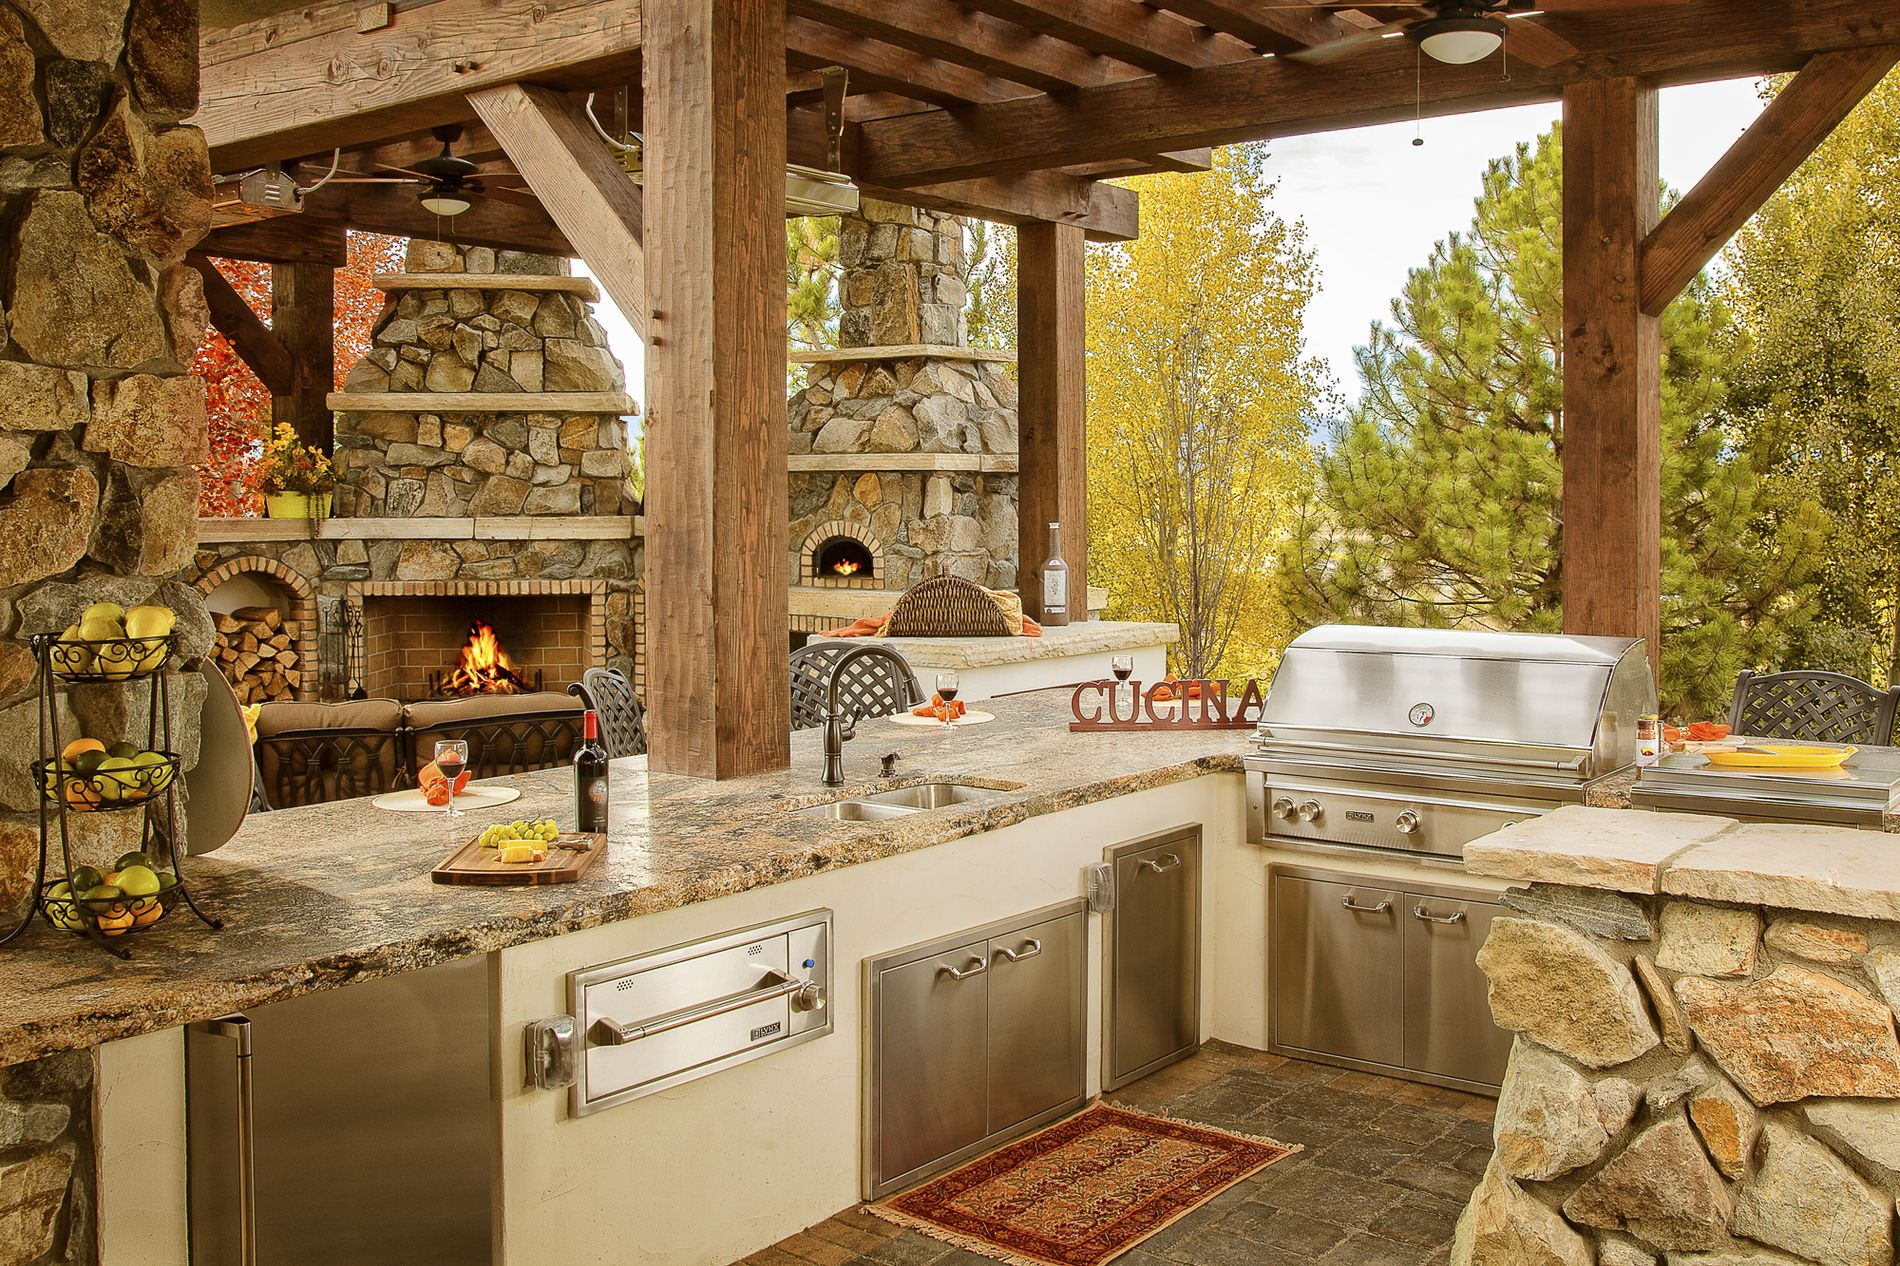 Outdoor Kitchen, fire place, and pizza oven